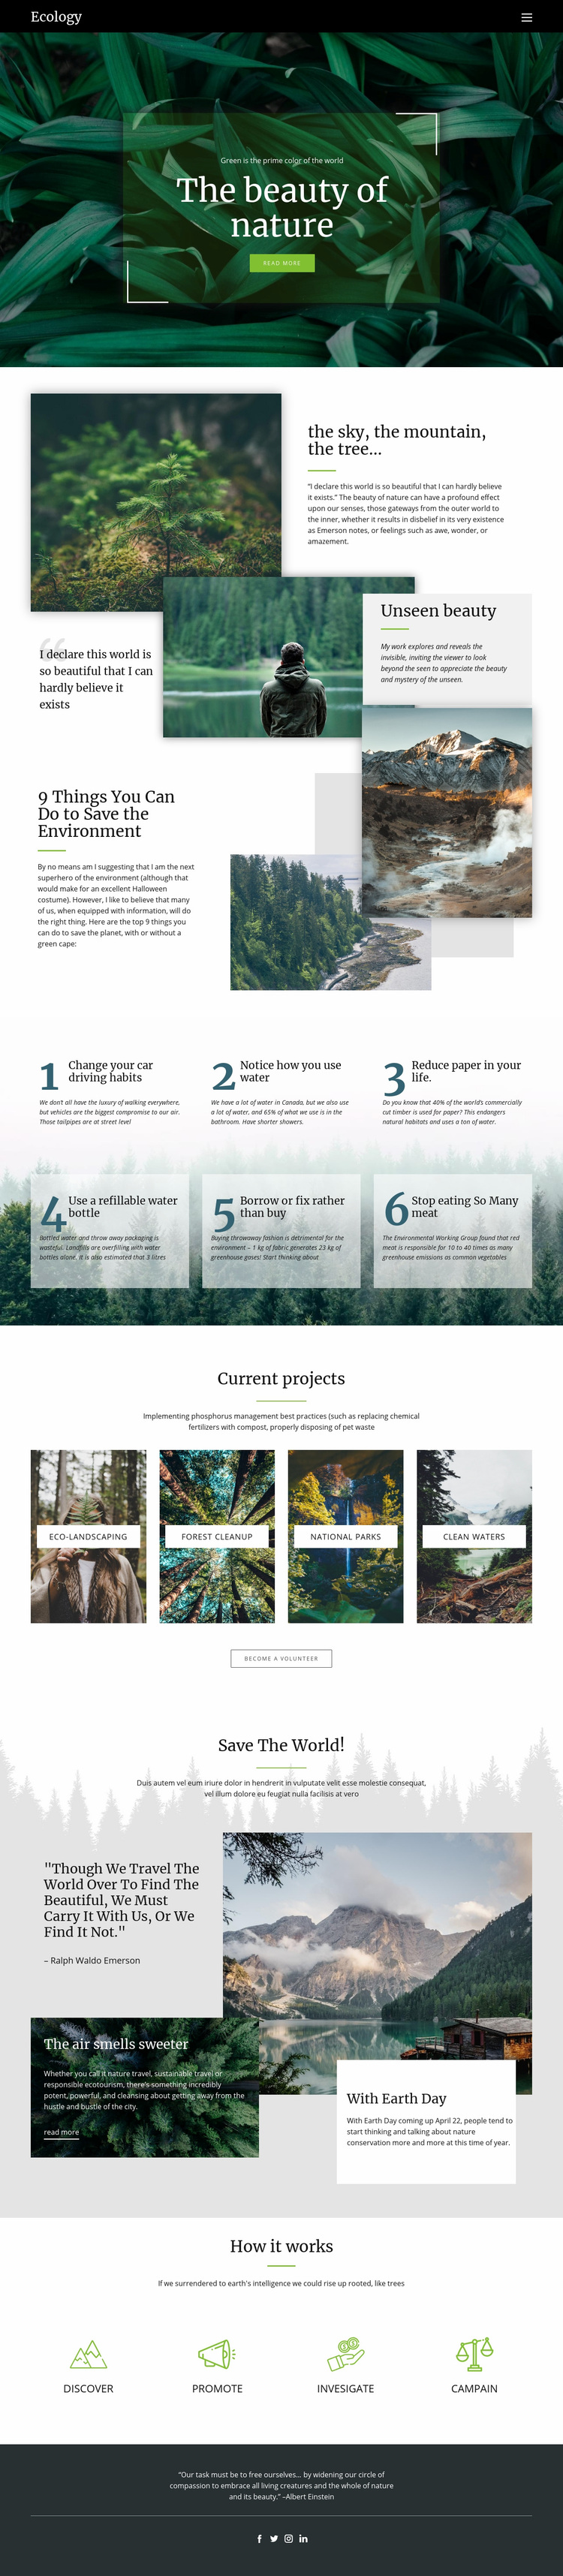 Skies and beauty of nature Web Page Designer